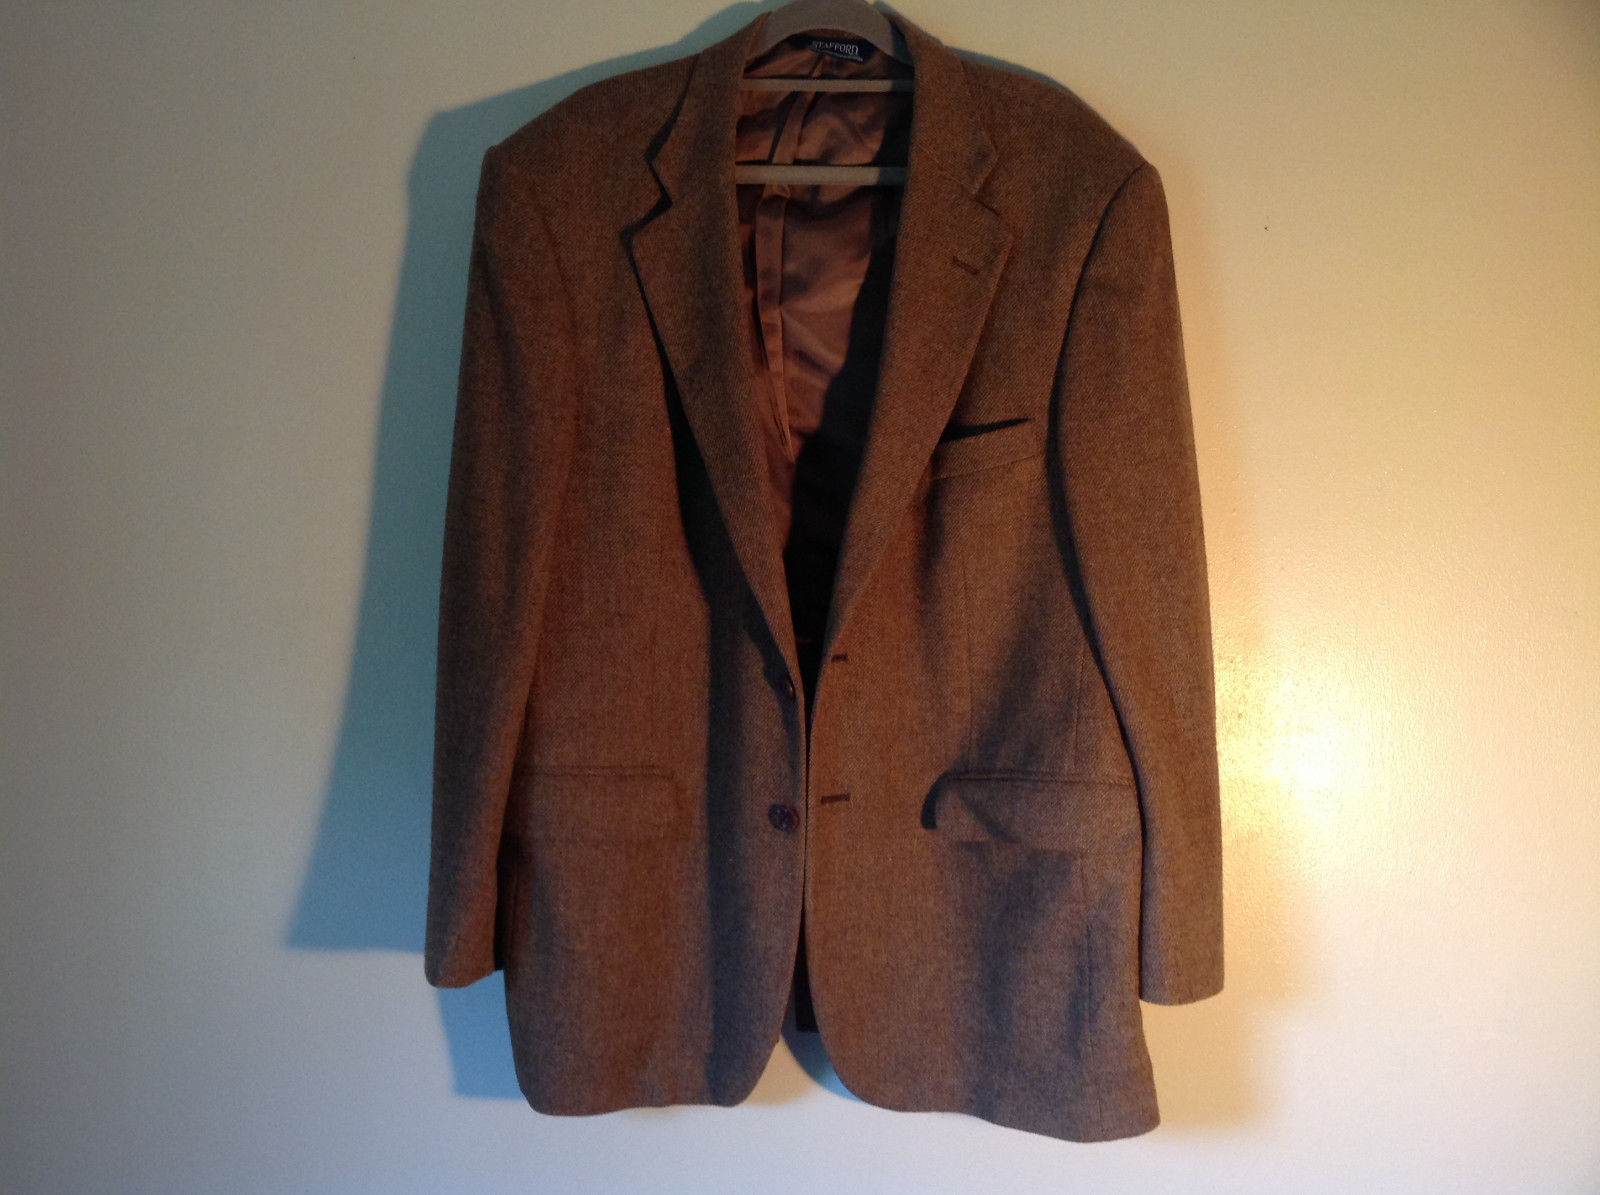 Brown Stafford Two Button Closure Wool Suit Jacket 2 Front Pockets